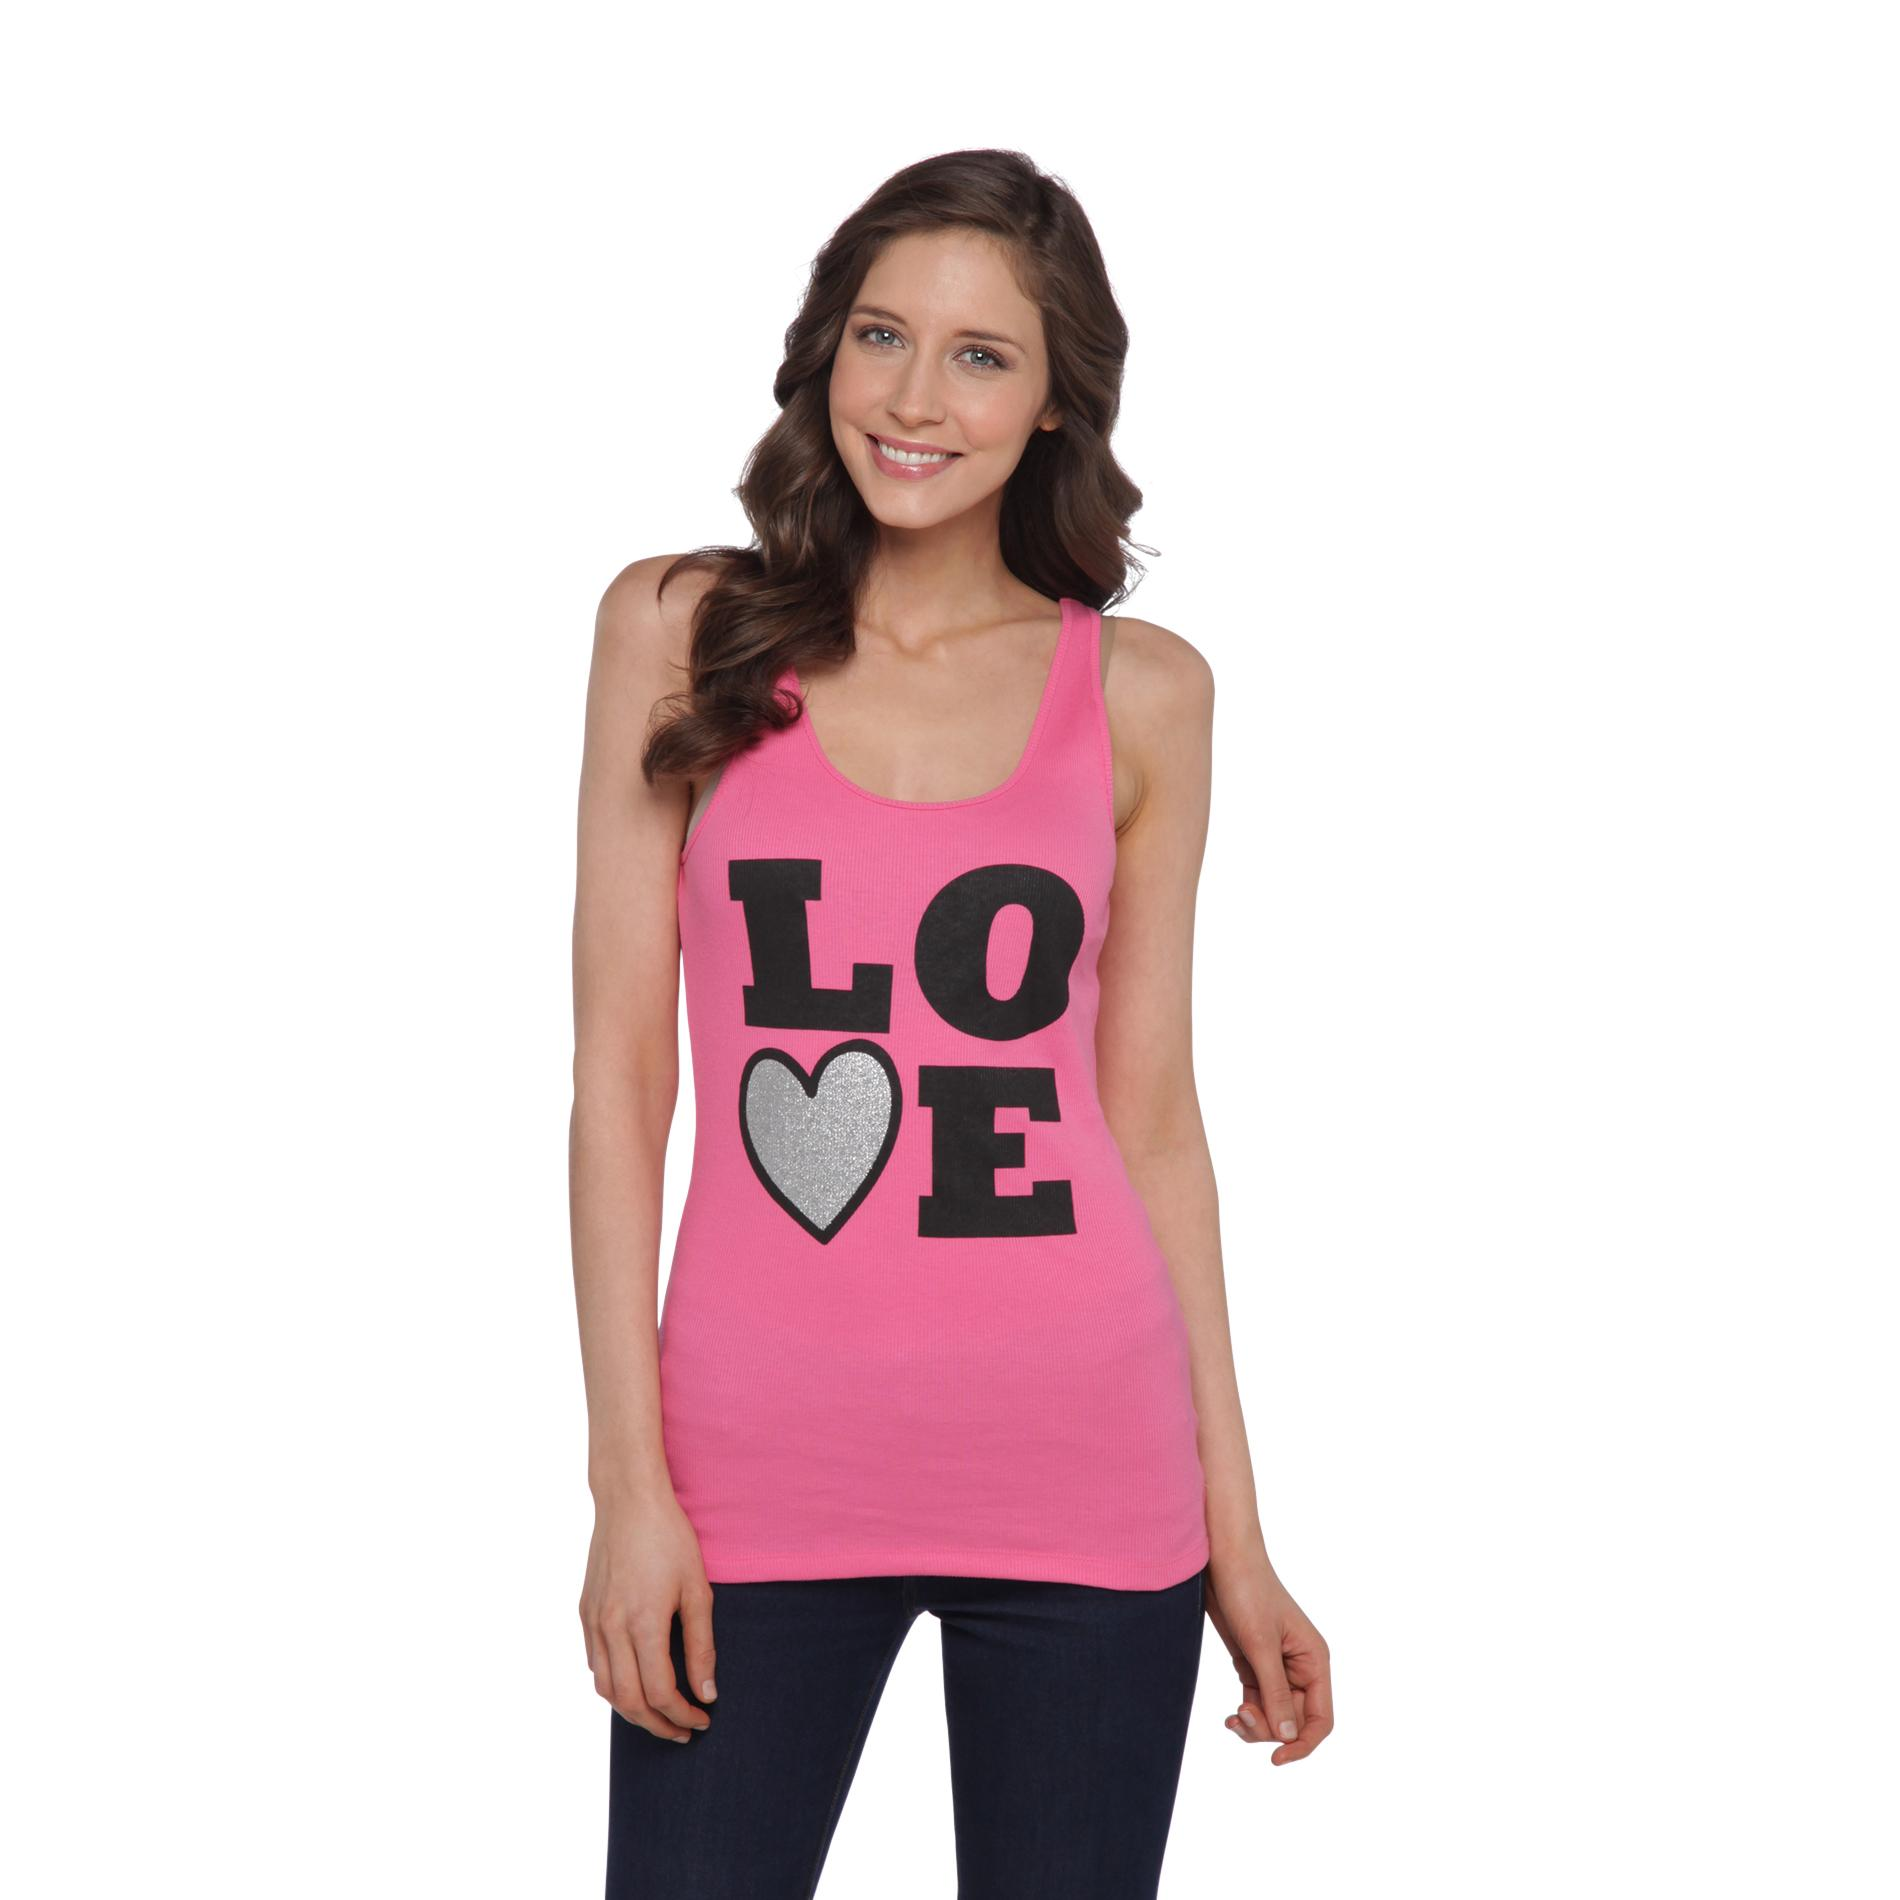 Joe by Joe Boxer Women's Rib Knit Tank Top - Love at Sears.com